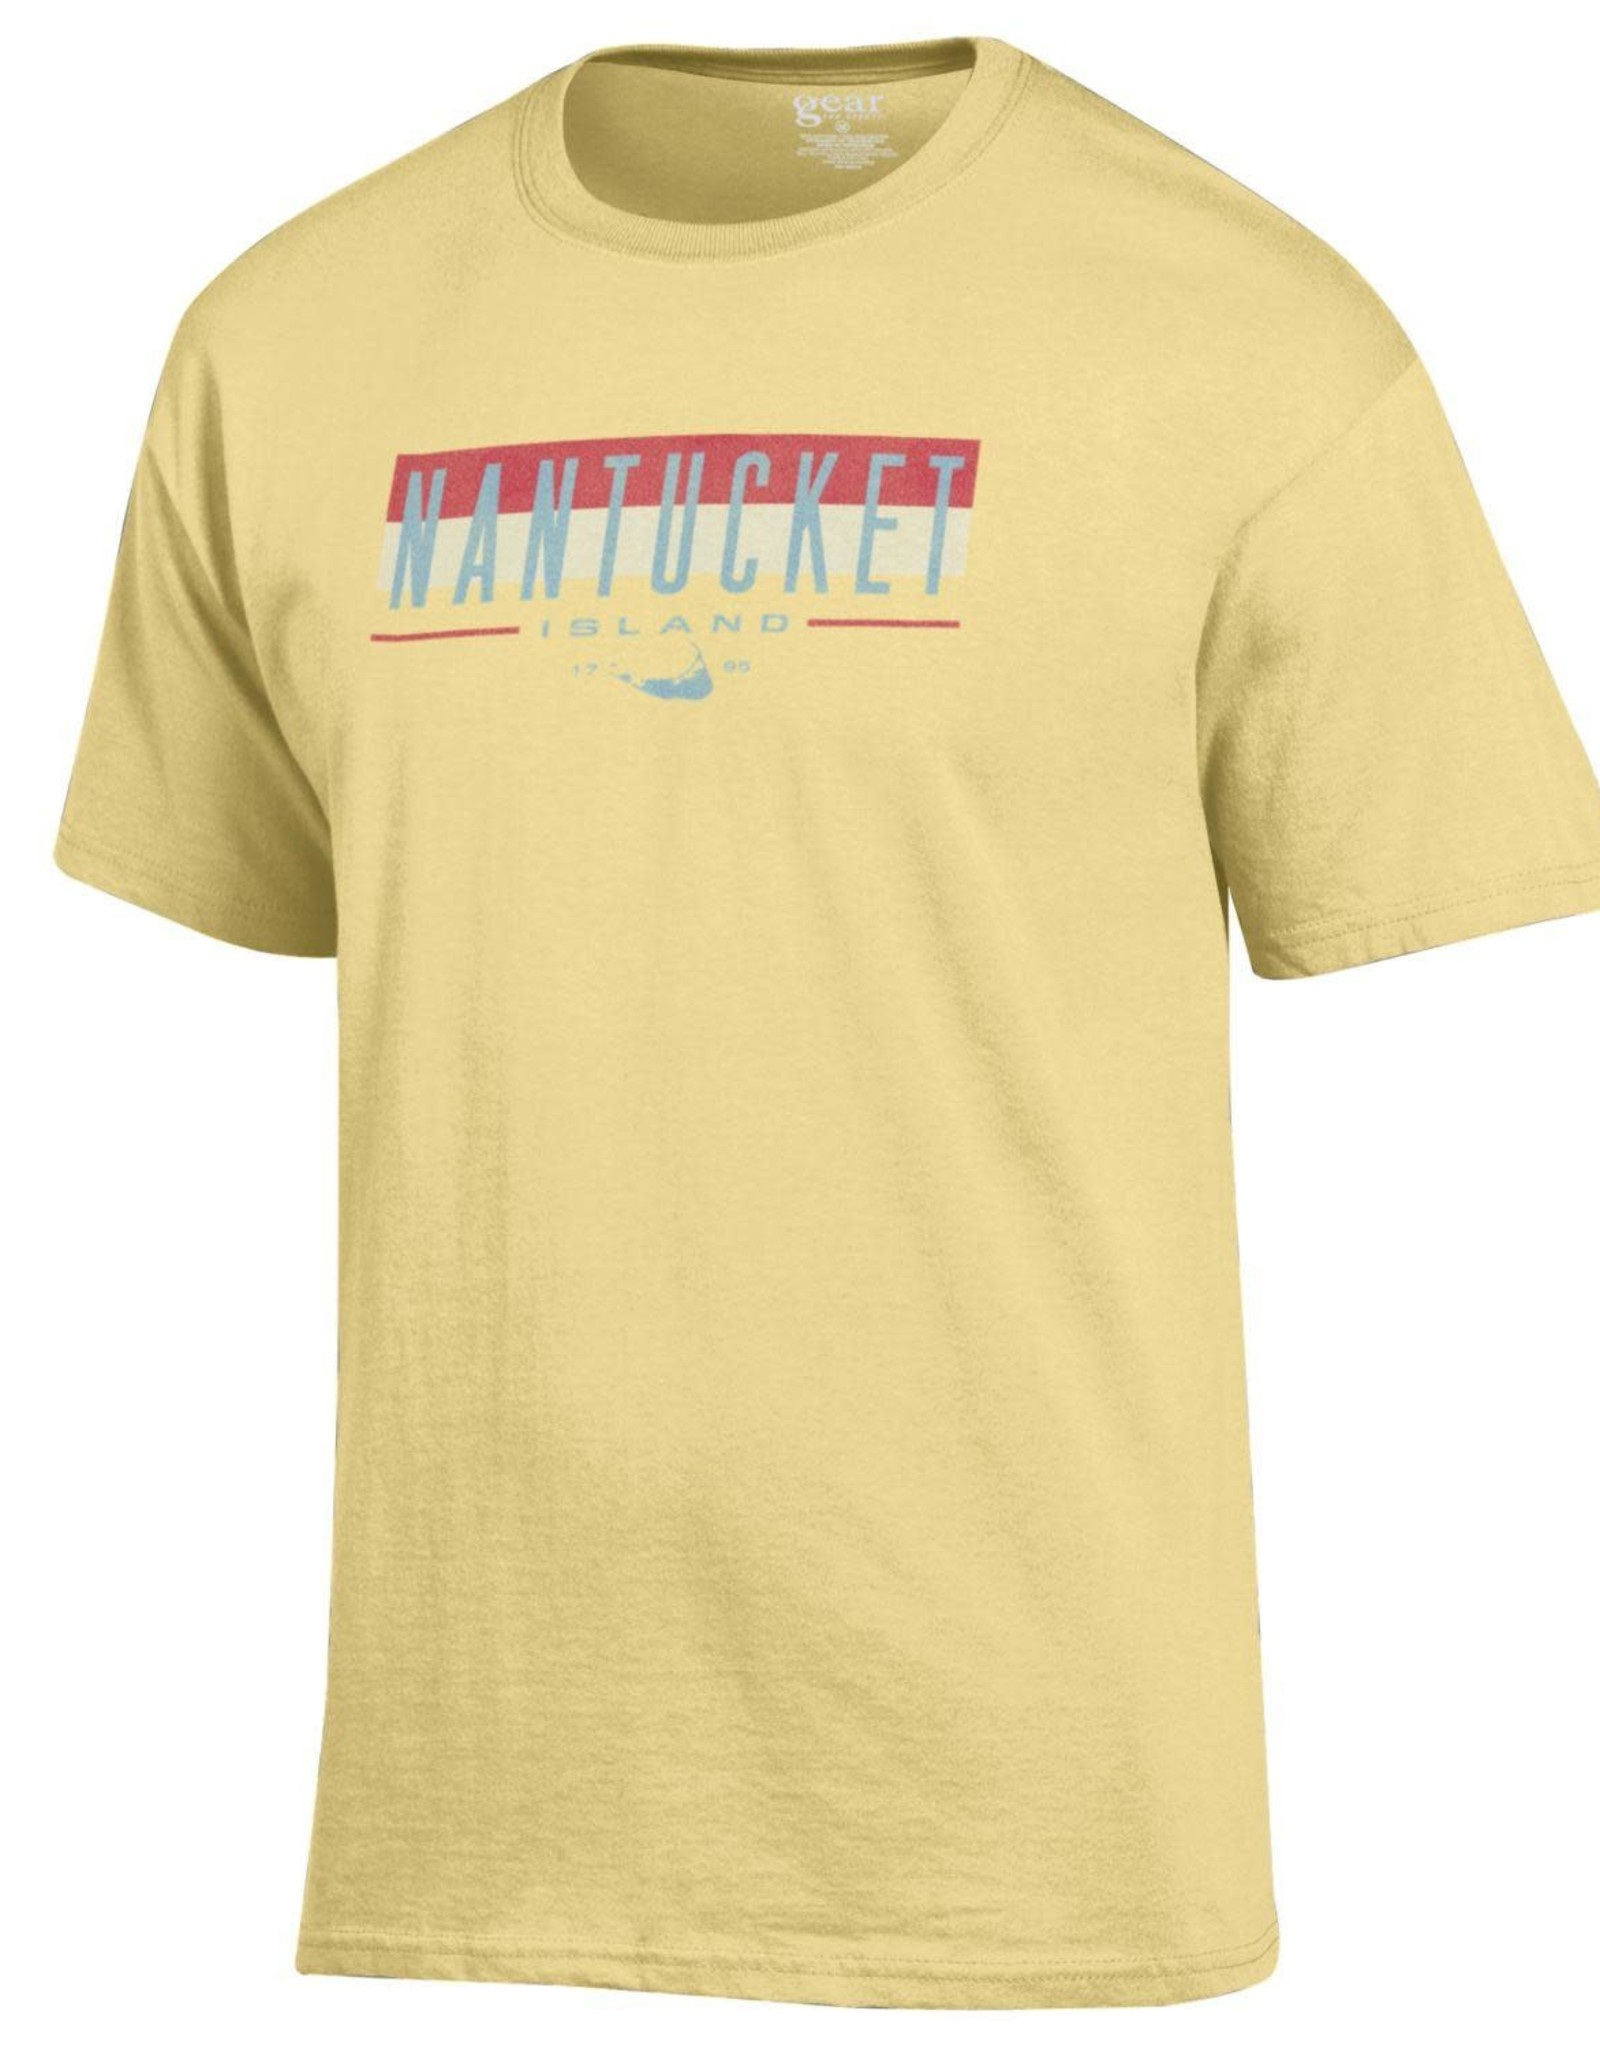 Gear Gear Mens Tee Colorblock Nantucket